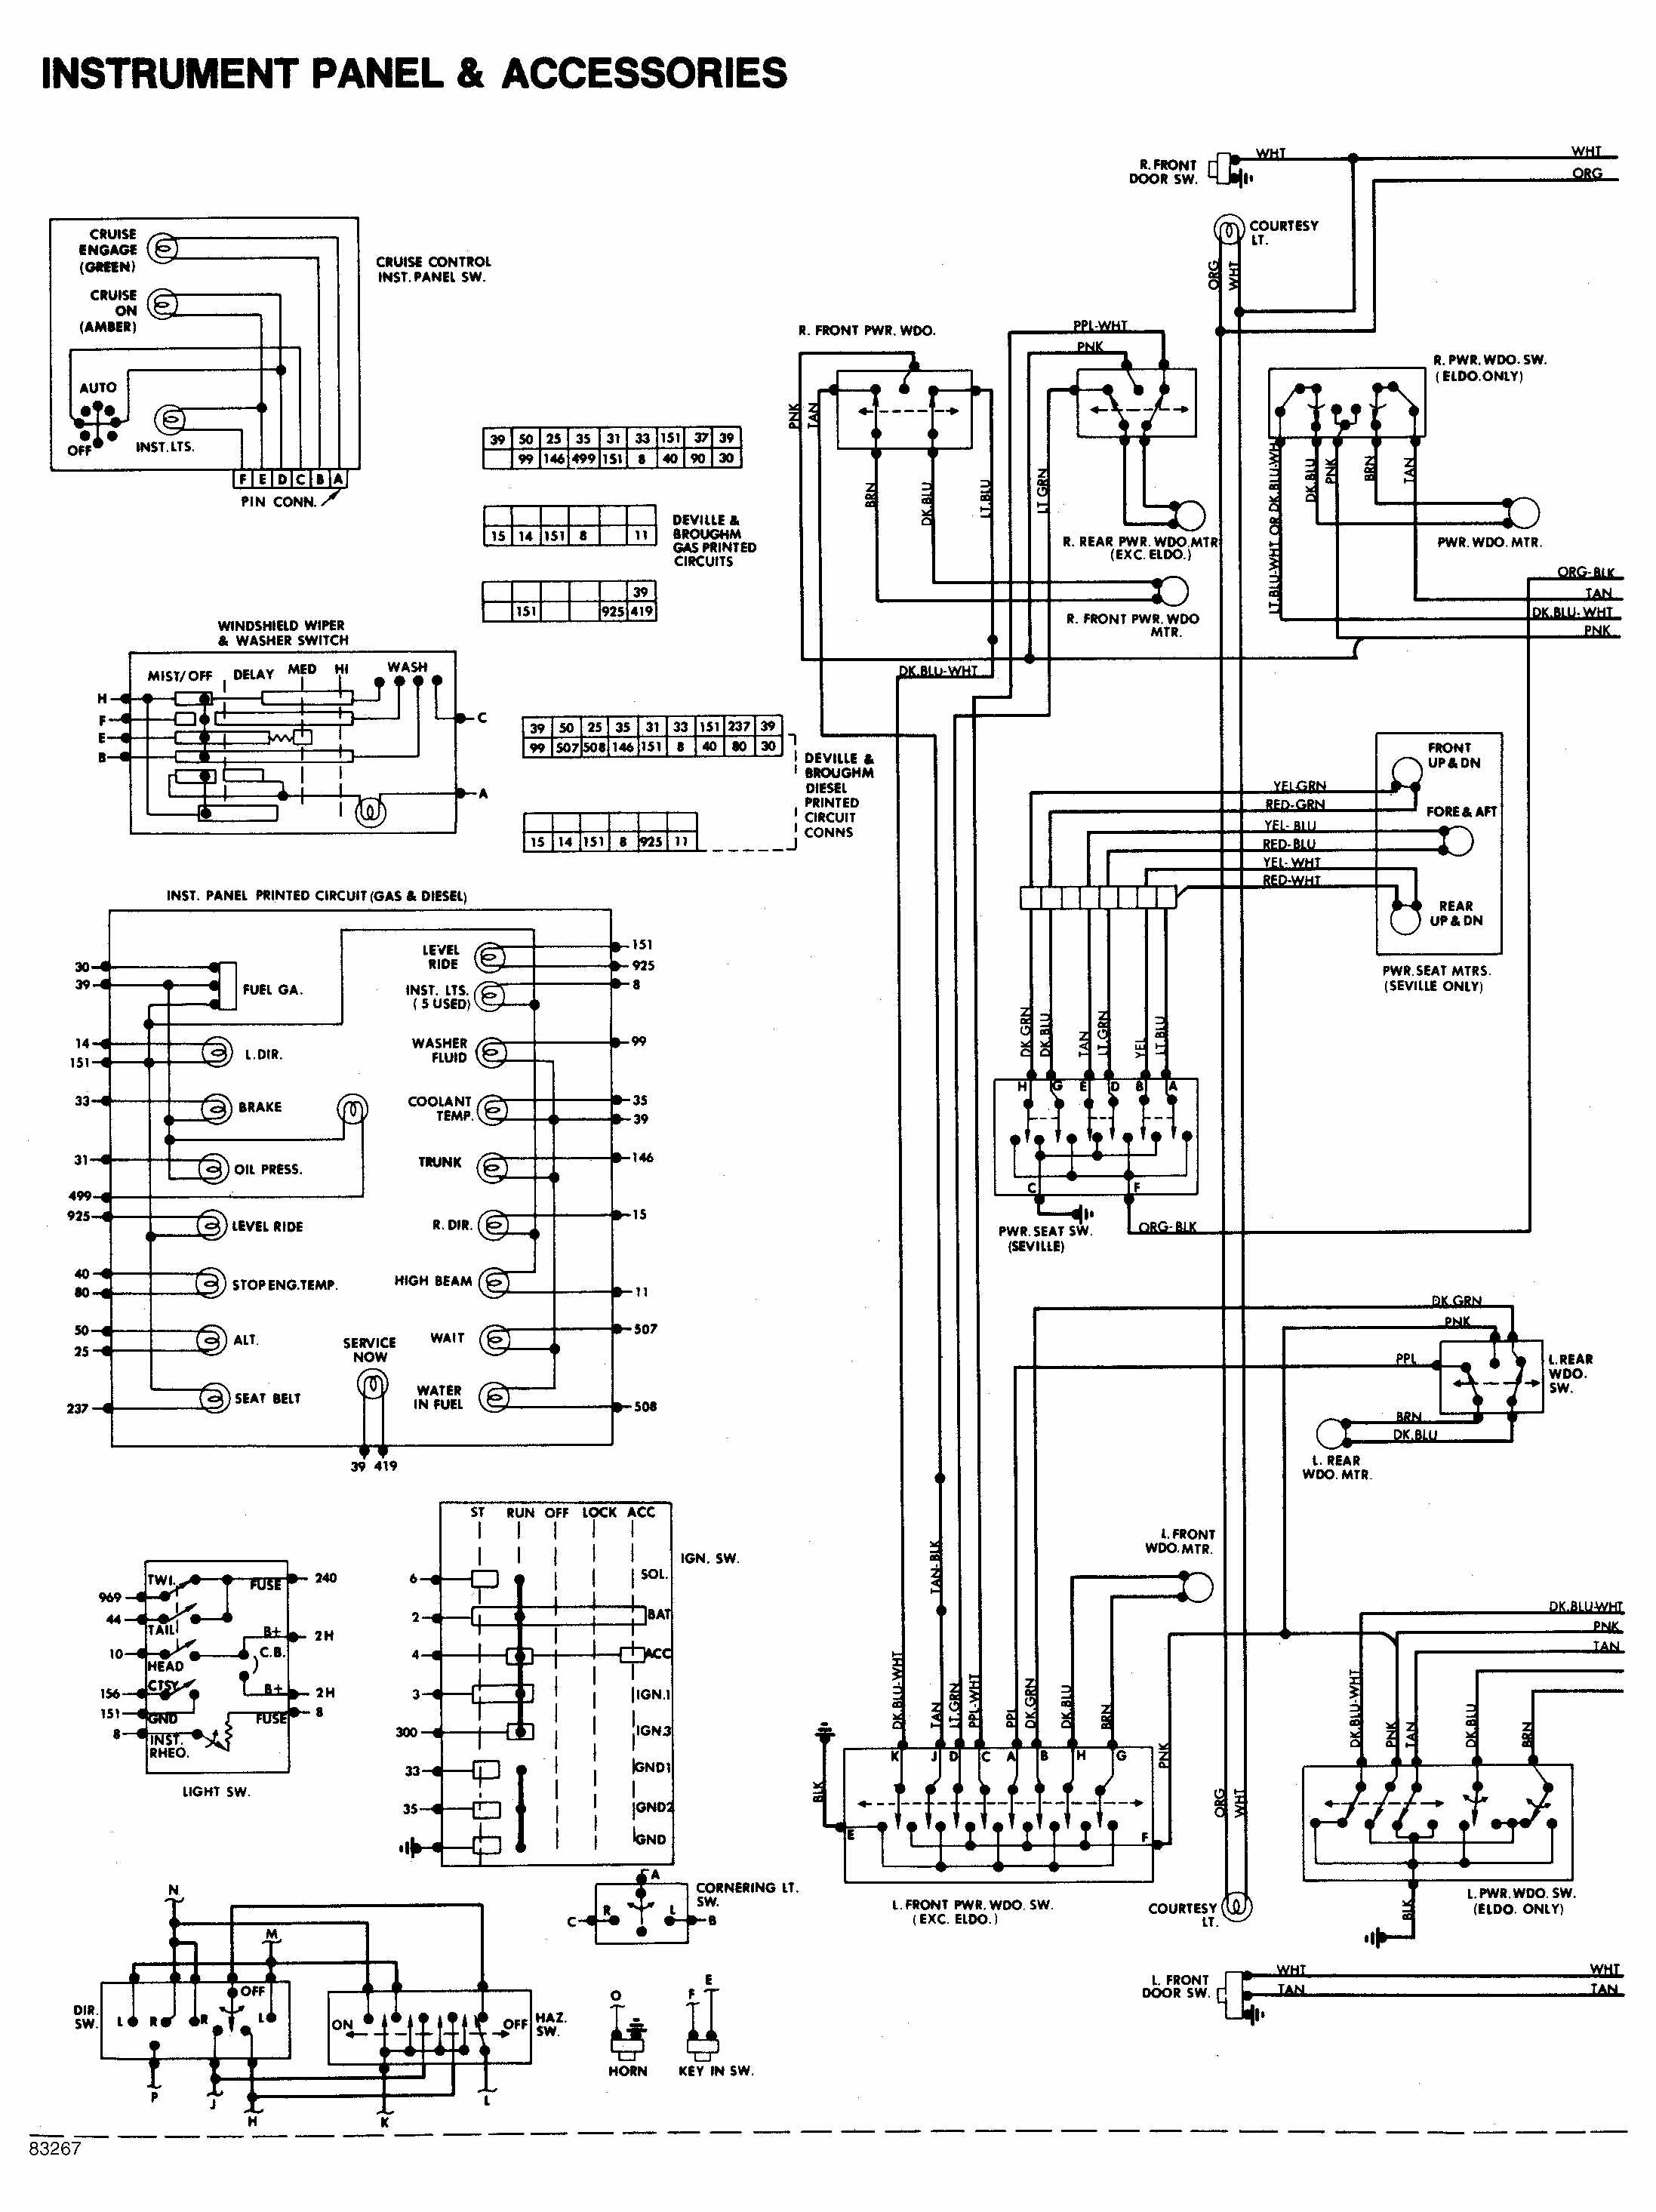 instrument panel and accessories wiring diagram of 1984 cadillac deville 1984 corvette wiring diagram free 1986 corvette wiring diagrams 1978 GMC Sierra at gsmportal.co